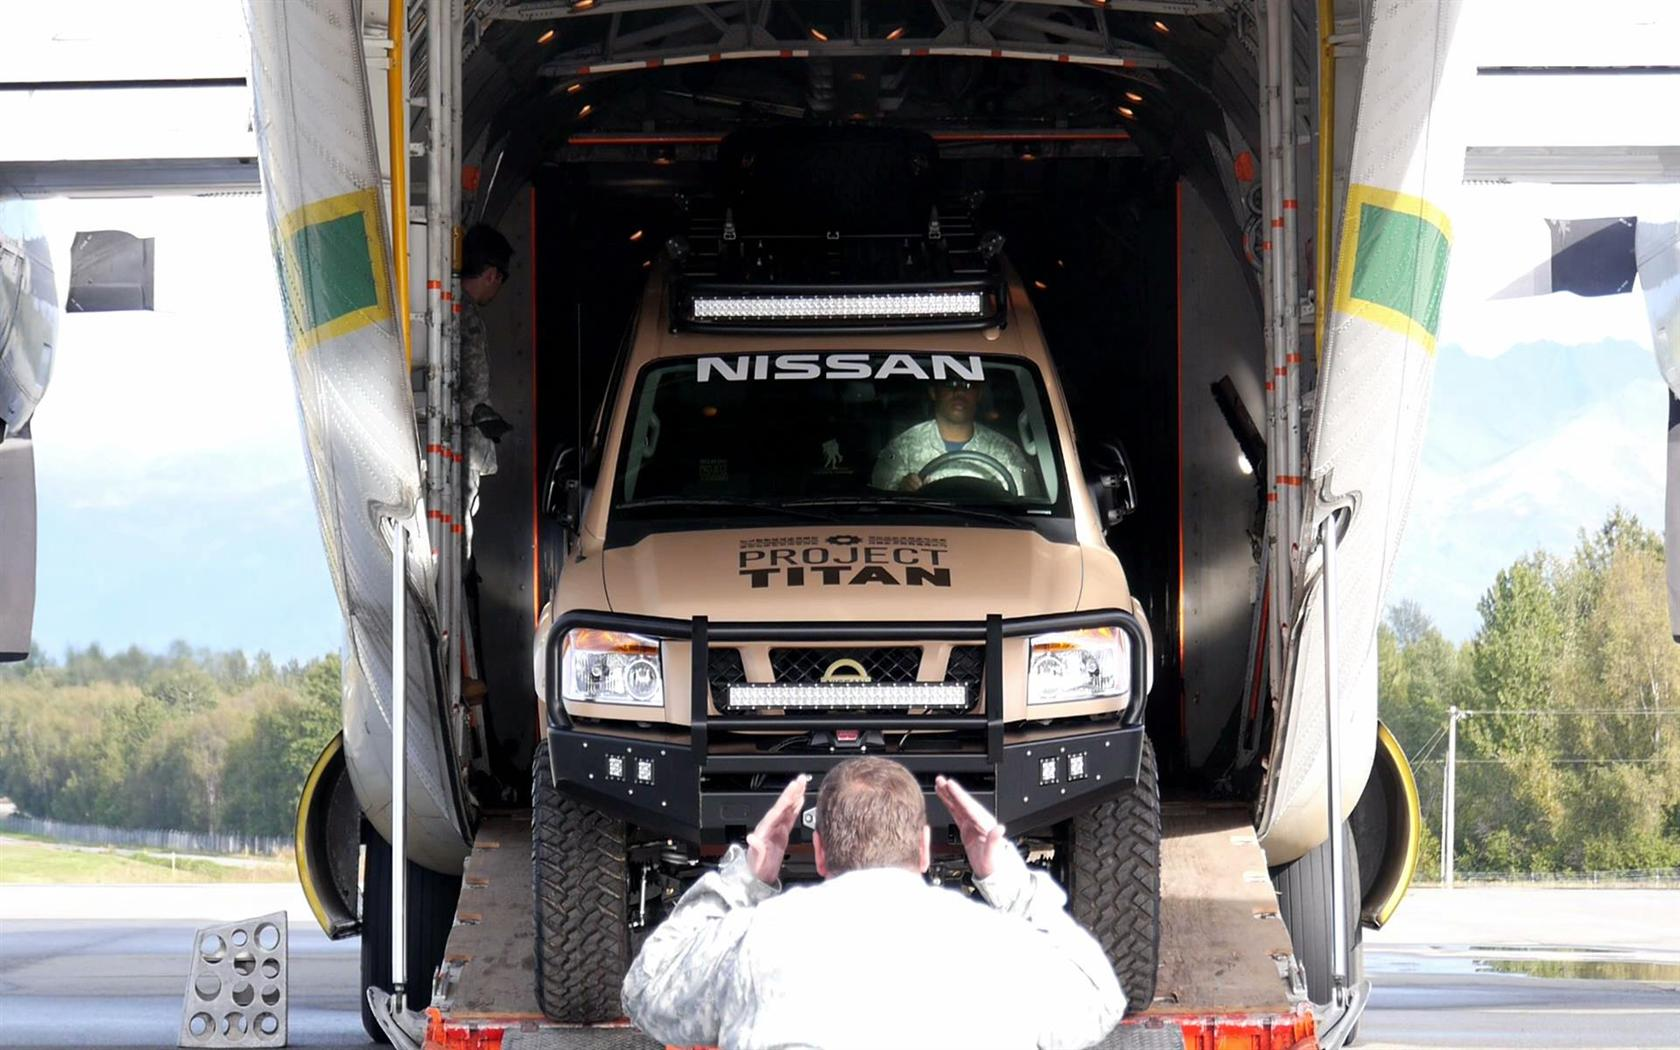 2014 Nissan Project Titan